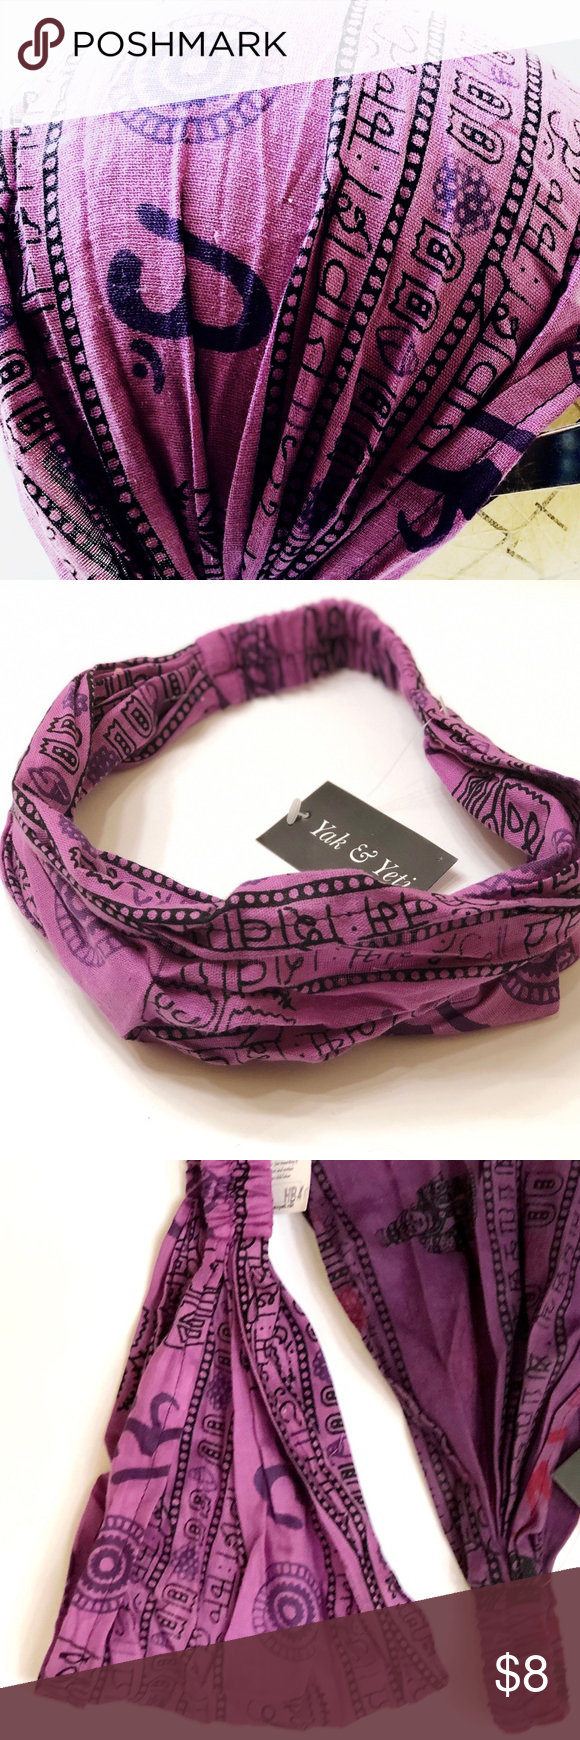 NWT - Boho Yoga Headband - 100% Cotton My Purple - Yoga Headband is 100% cotton made in Nepal, in bright multicolored stripes or patterns.  It gathers for a narrow slice of color or spreads to cover the whole head.  The elastic back keeps it hanging on, even when extremely active.  Popular among those ready to release their inner hippy.    Worn by men and women alike. I've even seen a baby wear one to protect it from the sun.   Great impromptu gift. Bundle them to have on hand for a quick pick m #yogaheadband